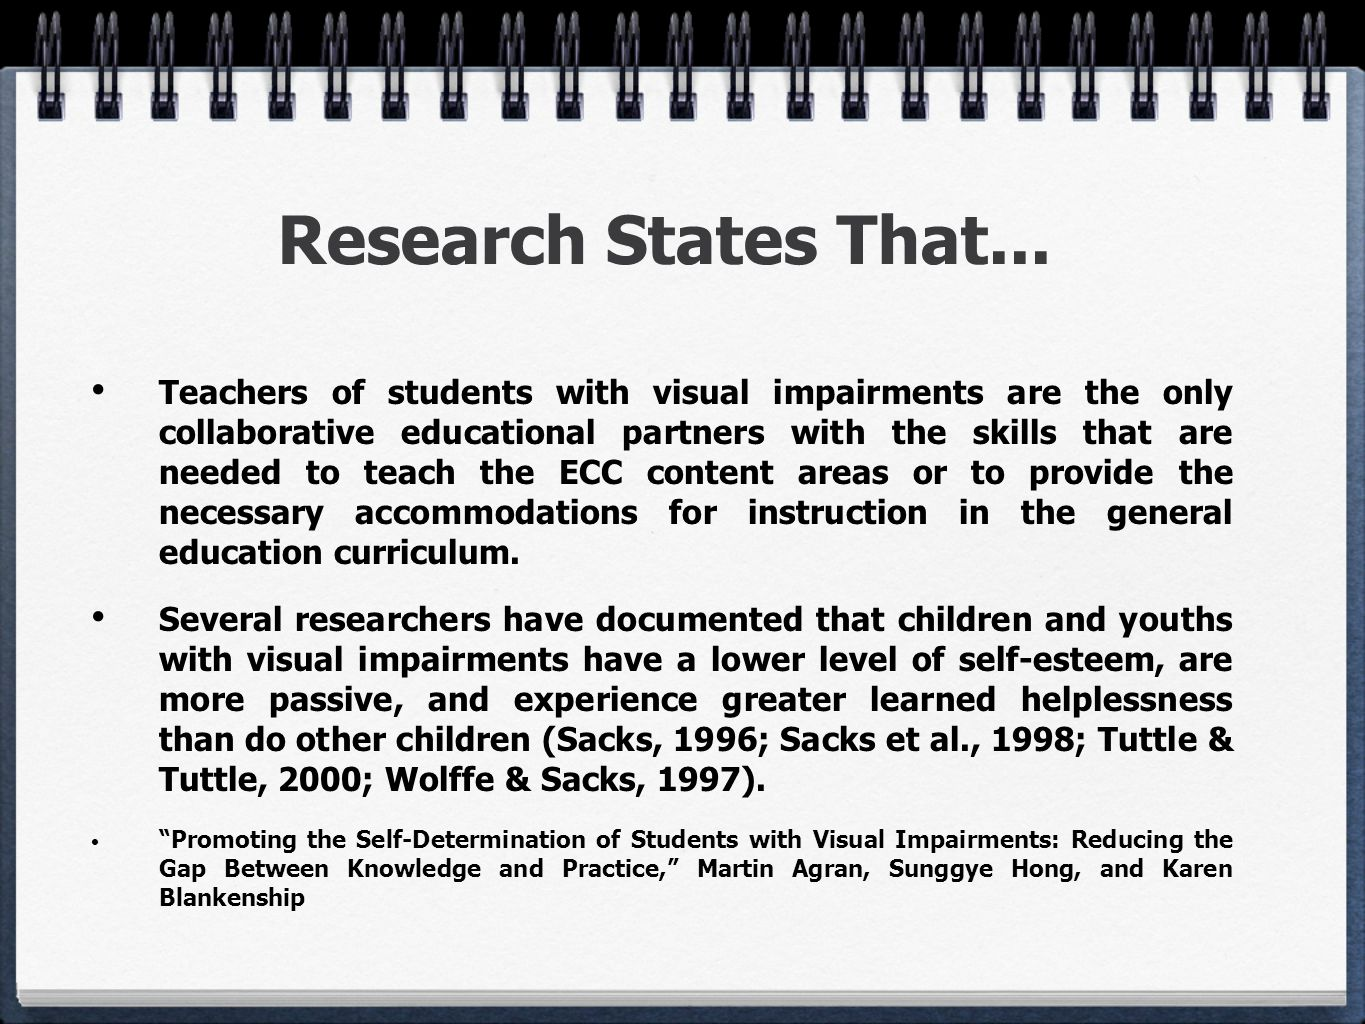 Research States That...